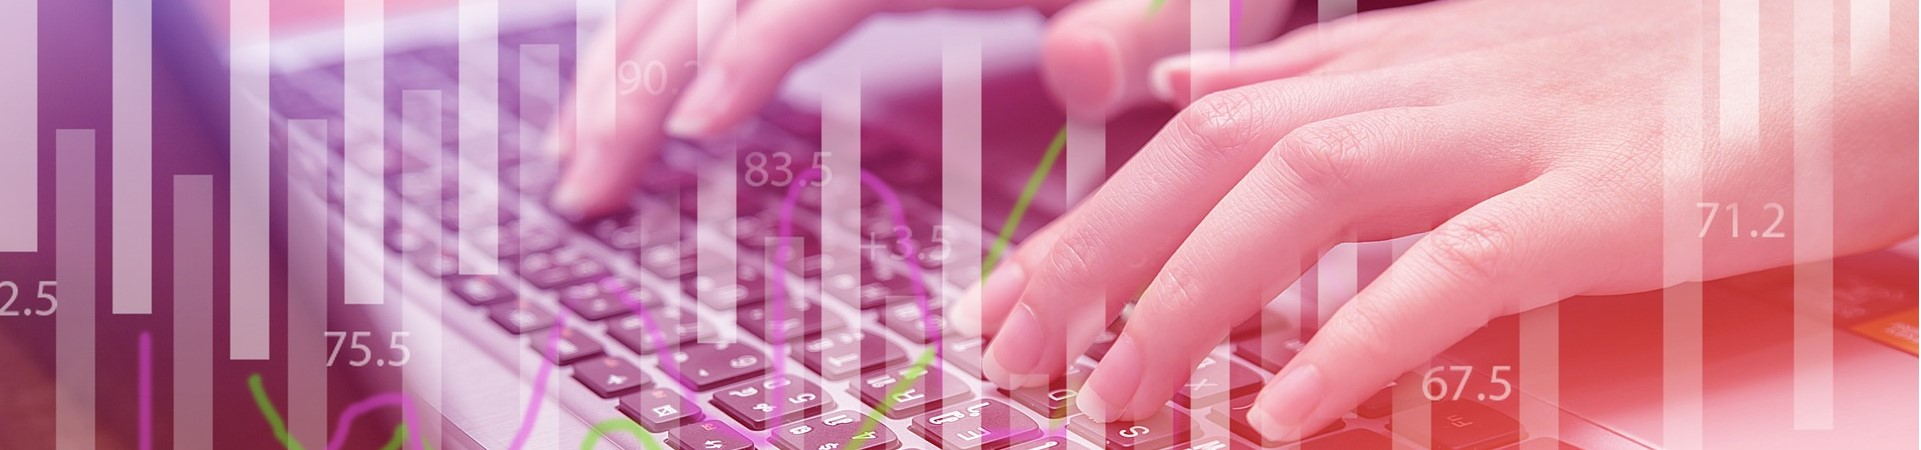 Woman working on keyboard with graphs overlay